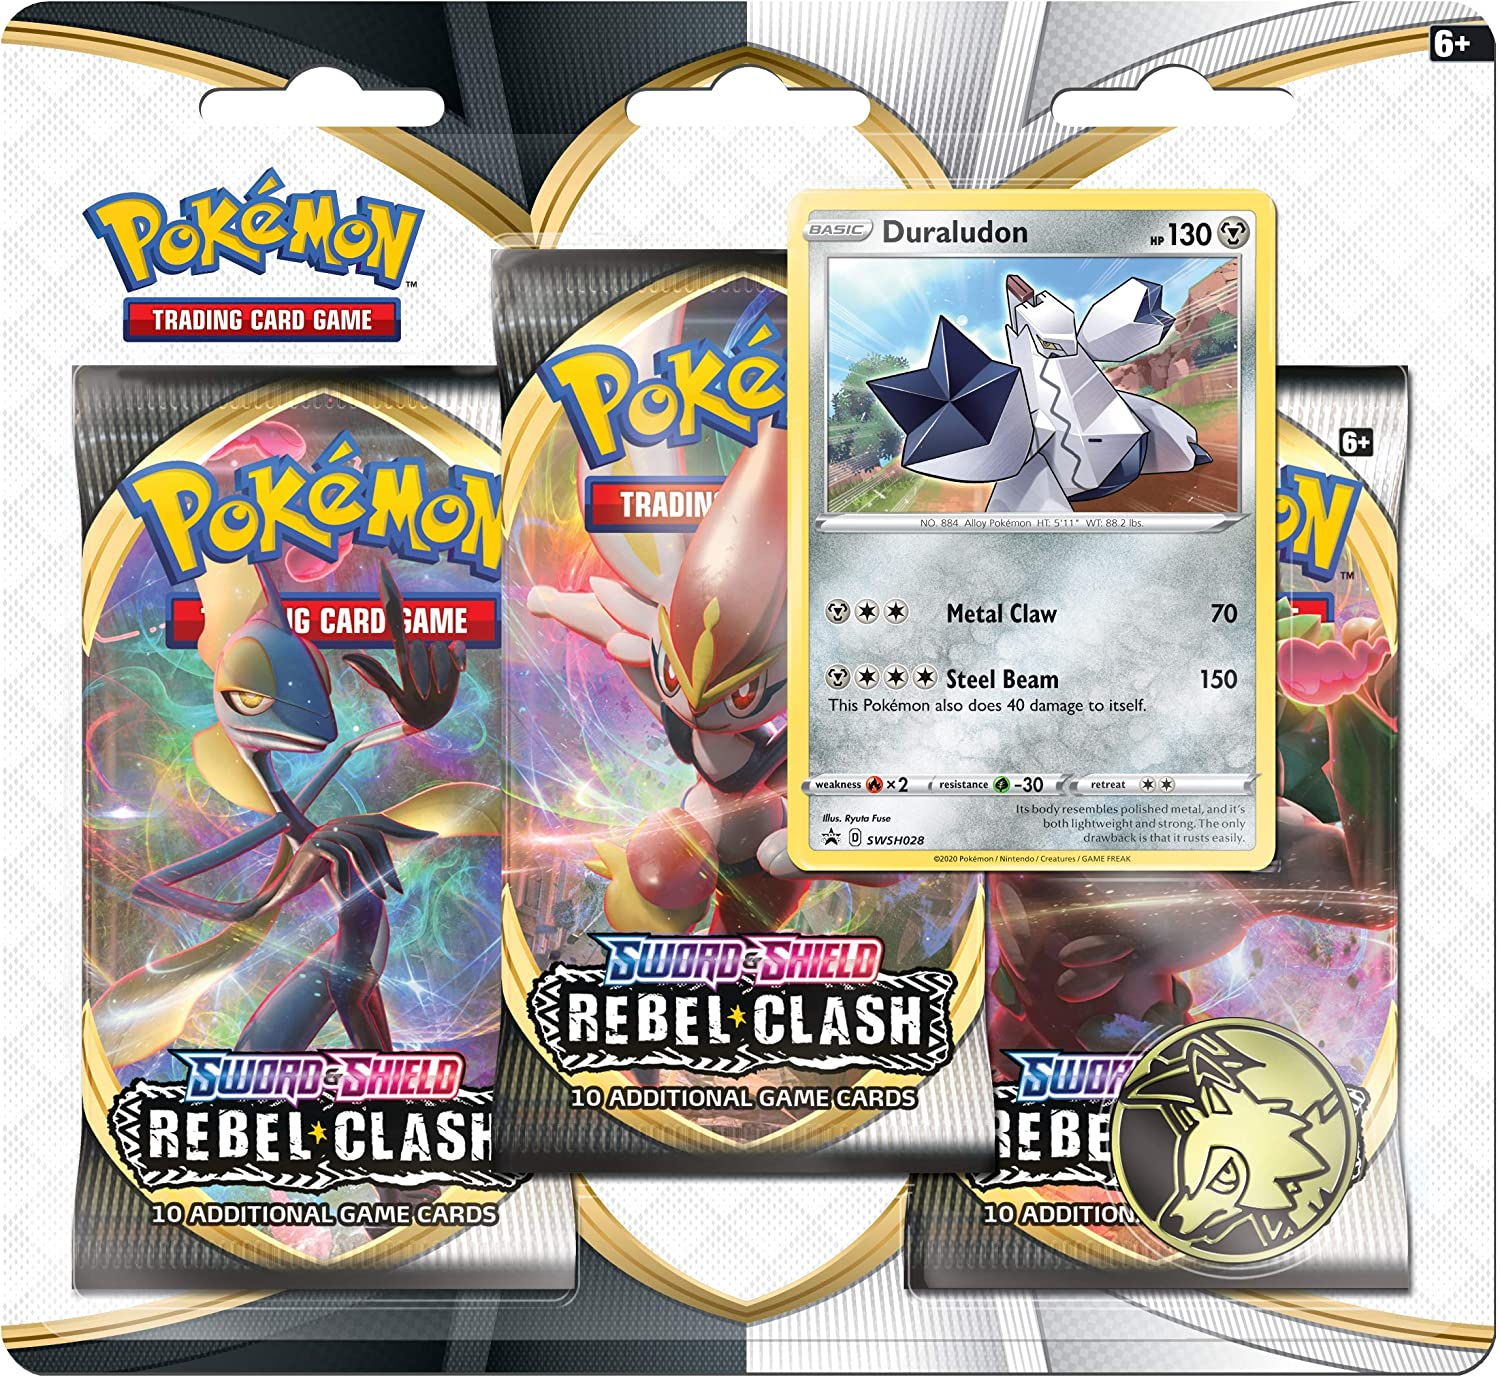 Pokemon TCG: Sword & Shield Rebel Clash Blister Pack with 3 Booster Packs  and Duraludon: Amazon.de: Toys & Games